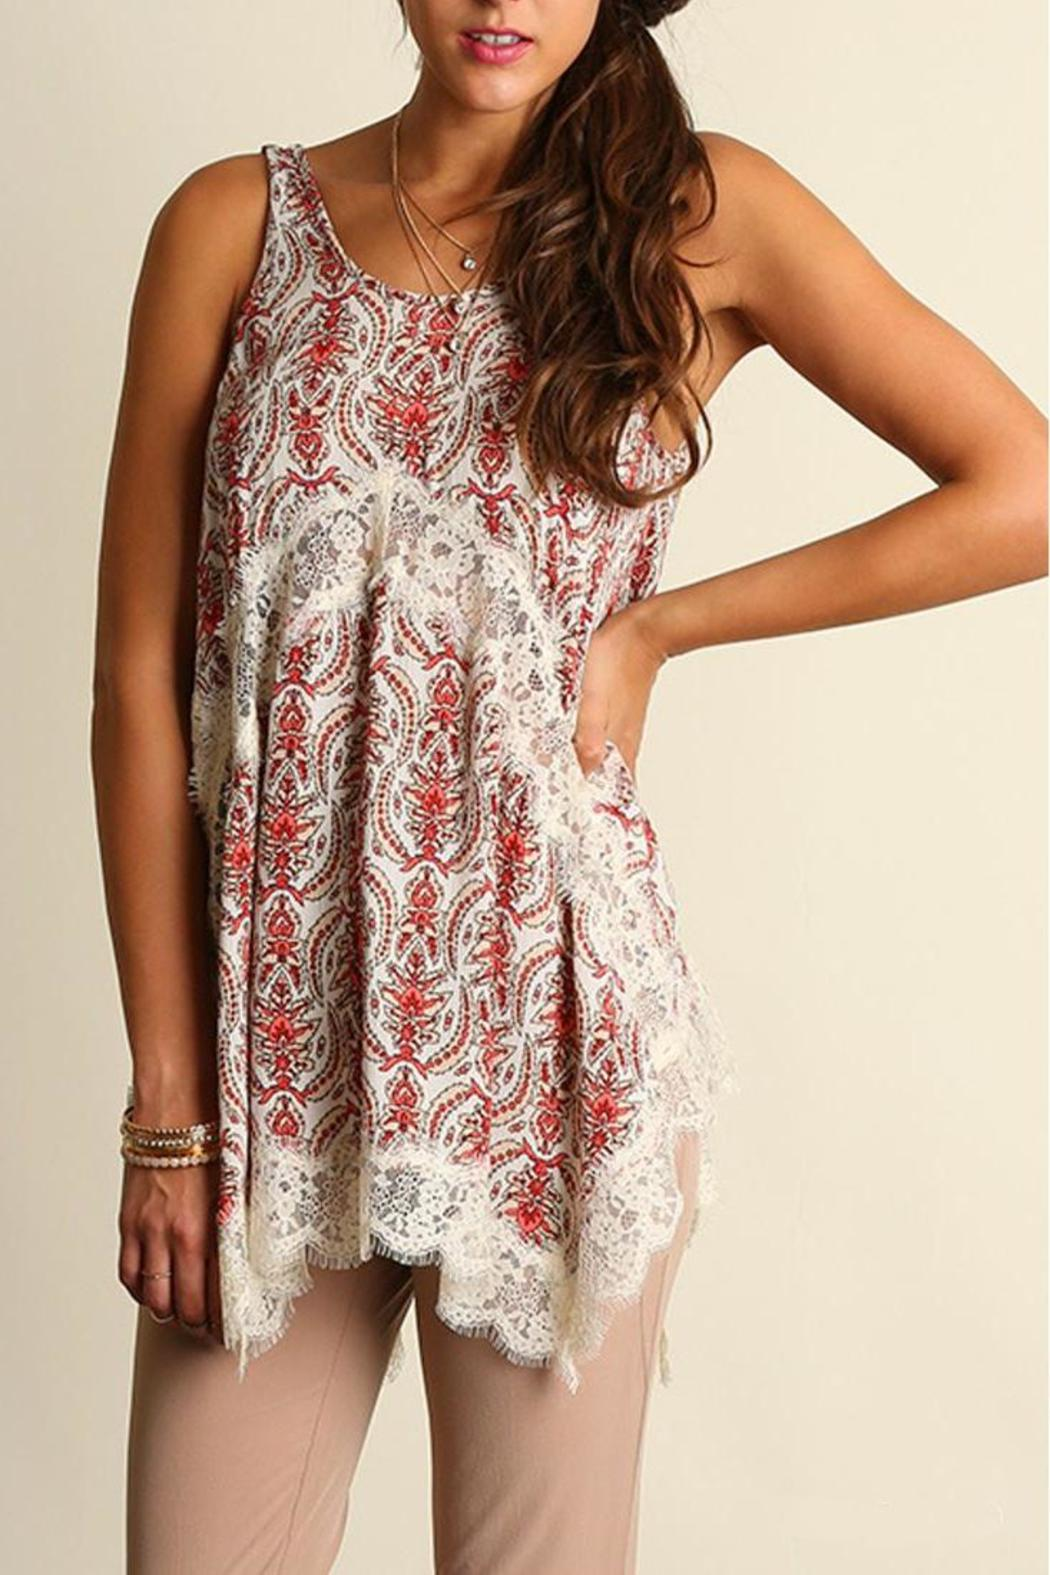 The Dressing Room Lace Coral Top - Main Image